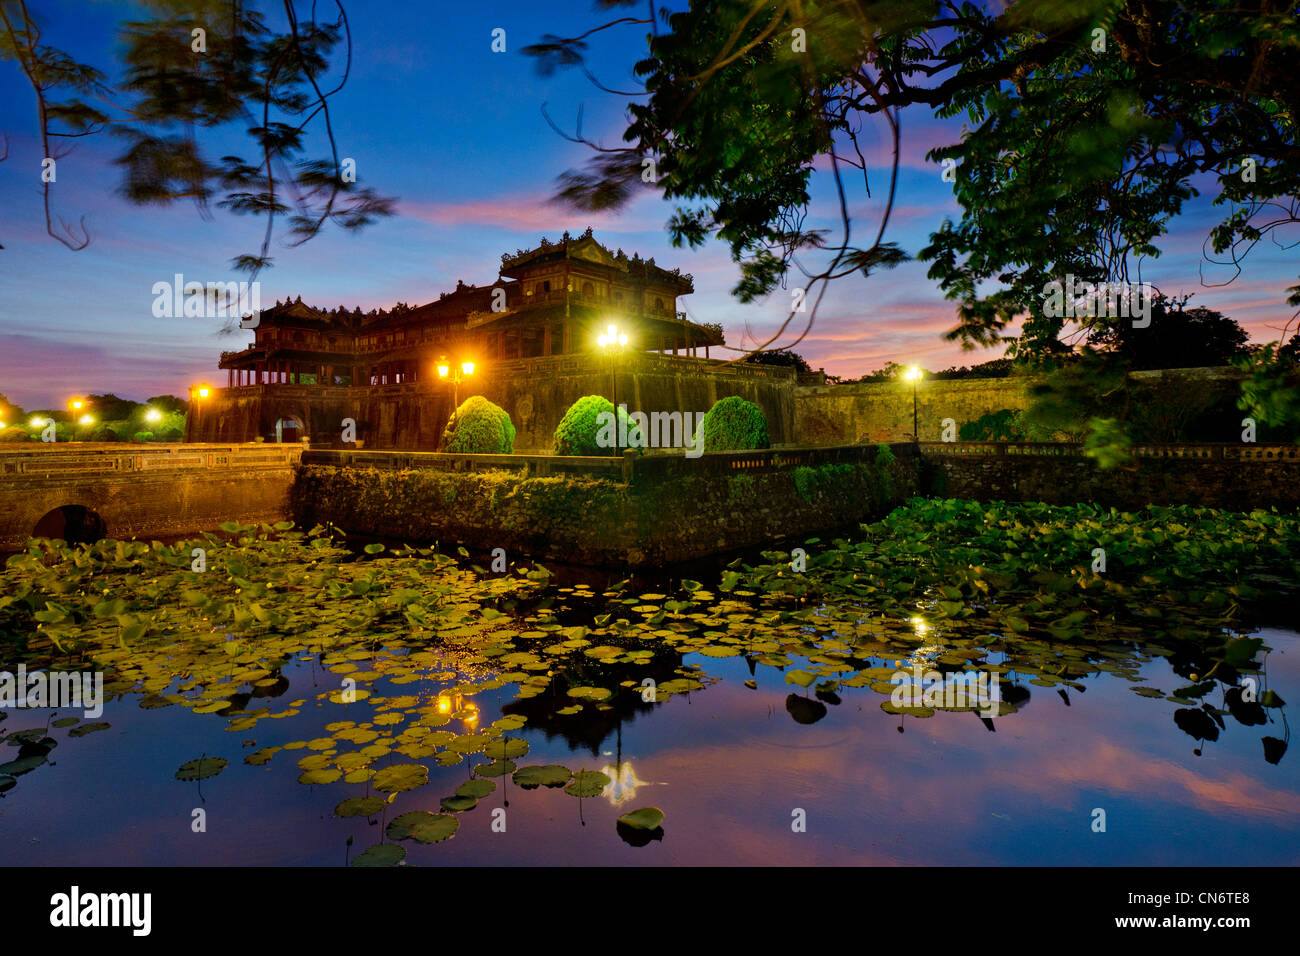 Entrance to the Imperial City at Twilight, Hue, Vietnam - Stock Image